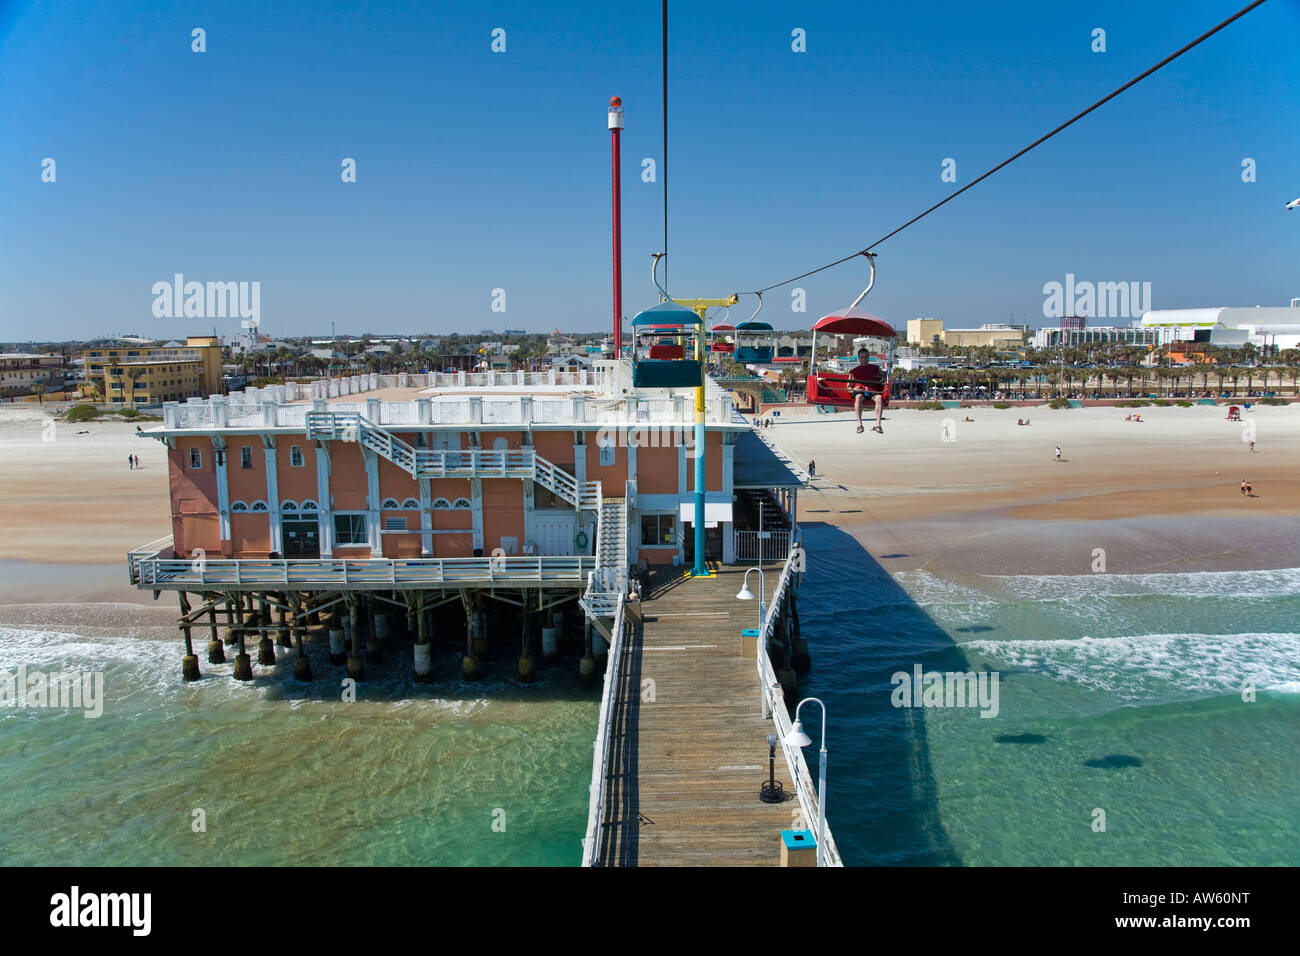 Fishing pier and cable car ride on the beach at daytona for Daytona fishing pier